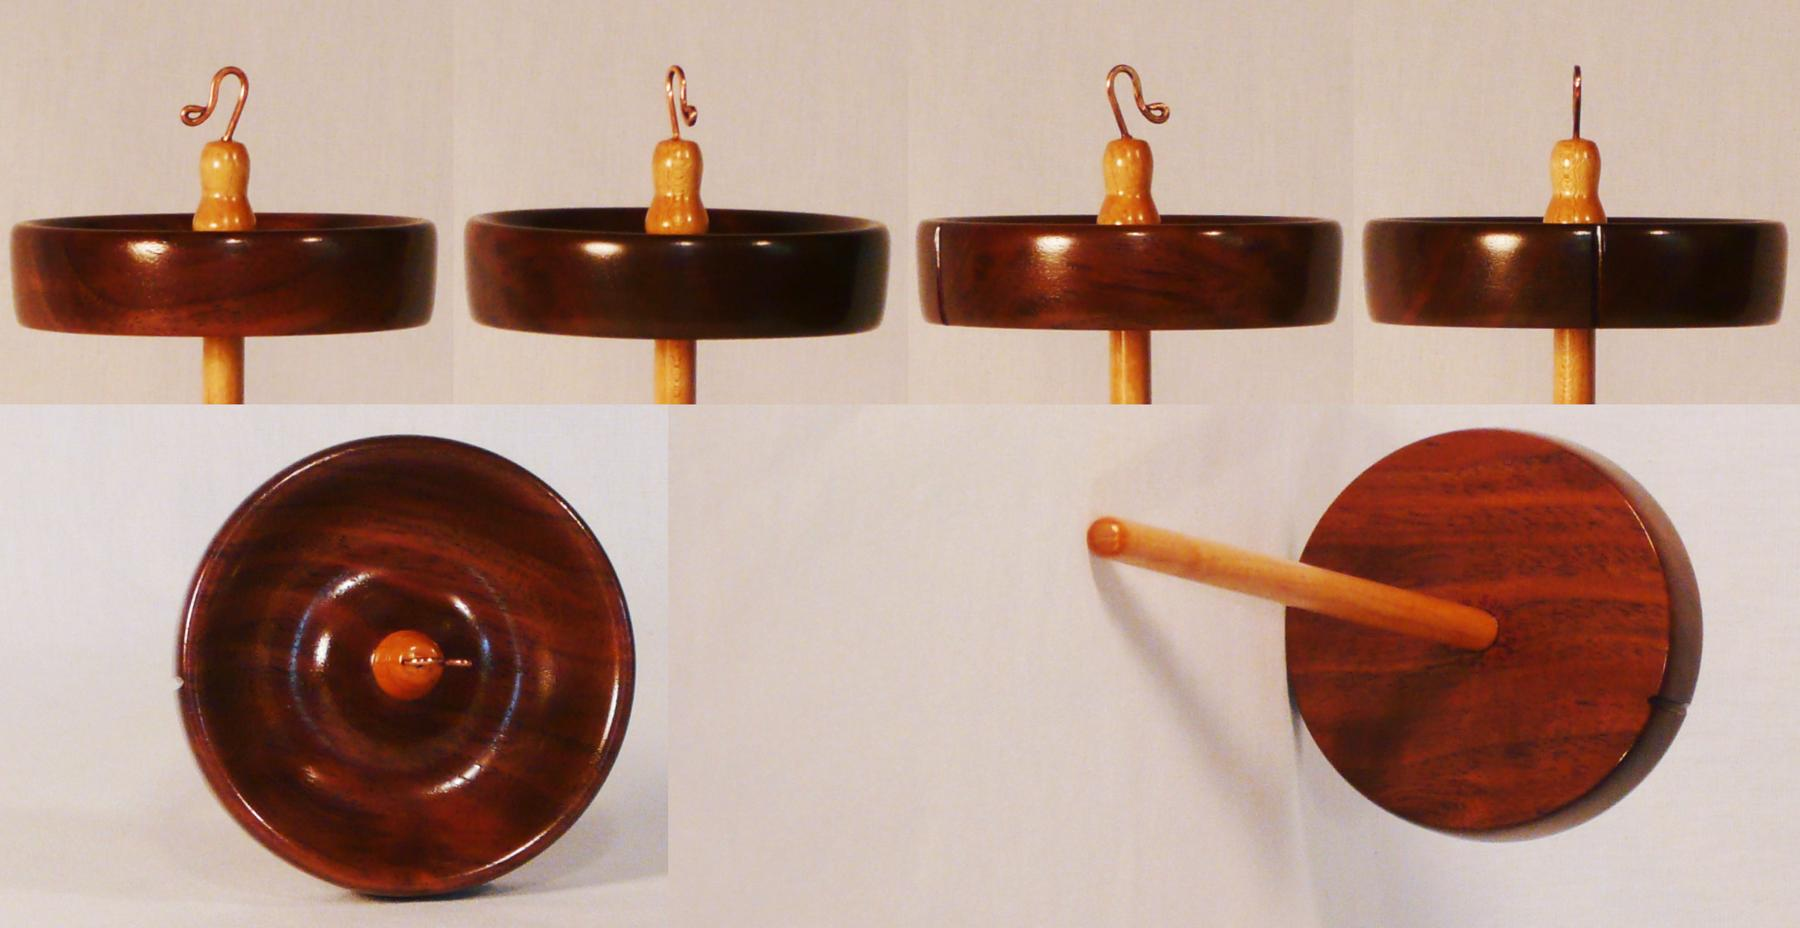 Hand turned high whorl notched drop spindle for spinning yarn by Cynthia D. Haney of Walnut and Maple woods.